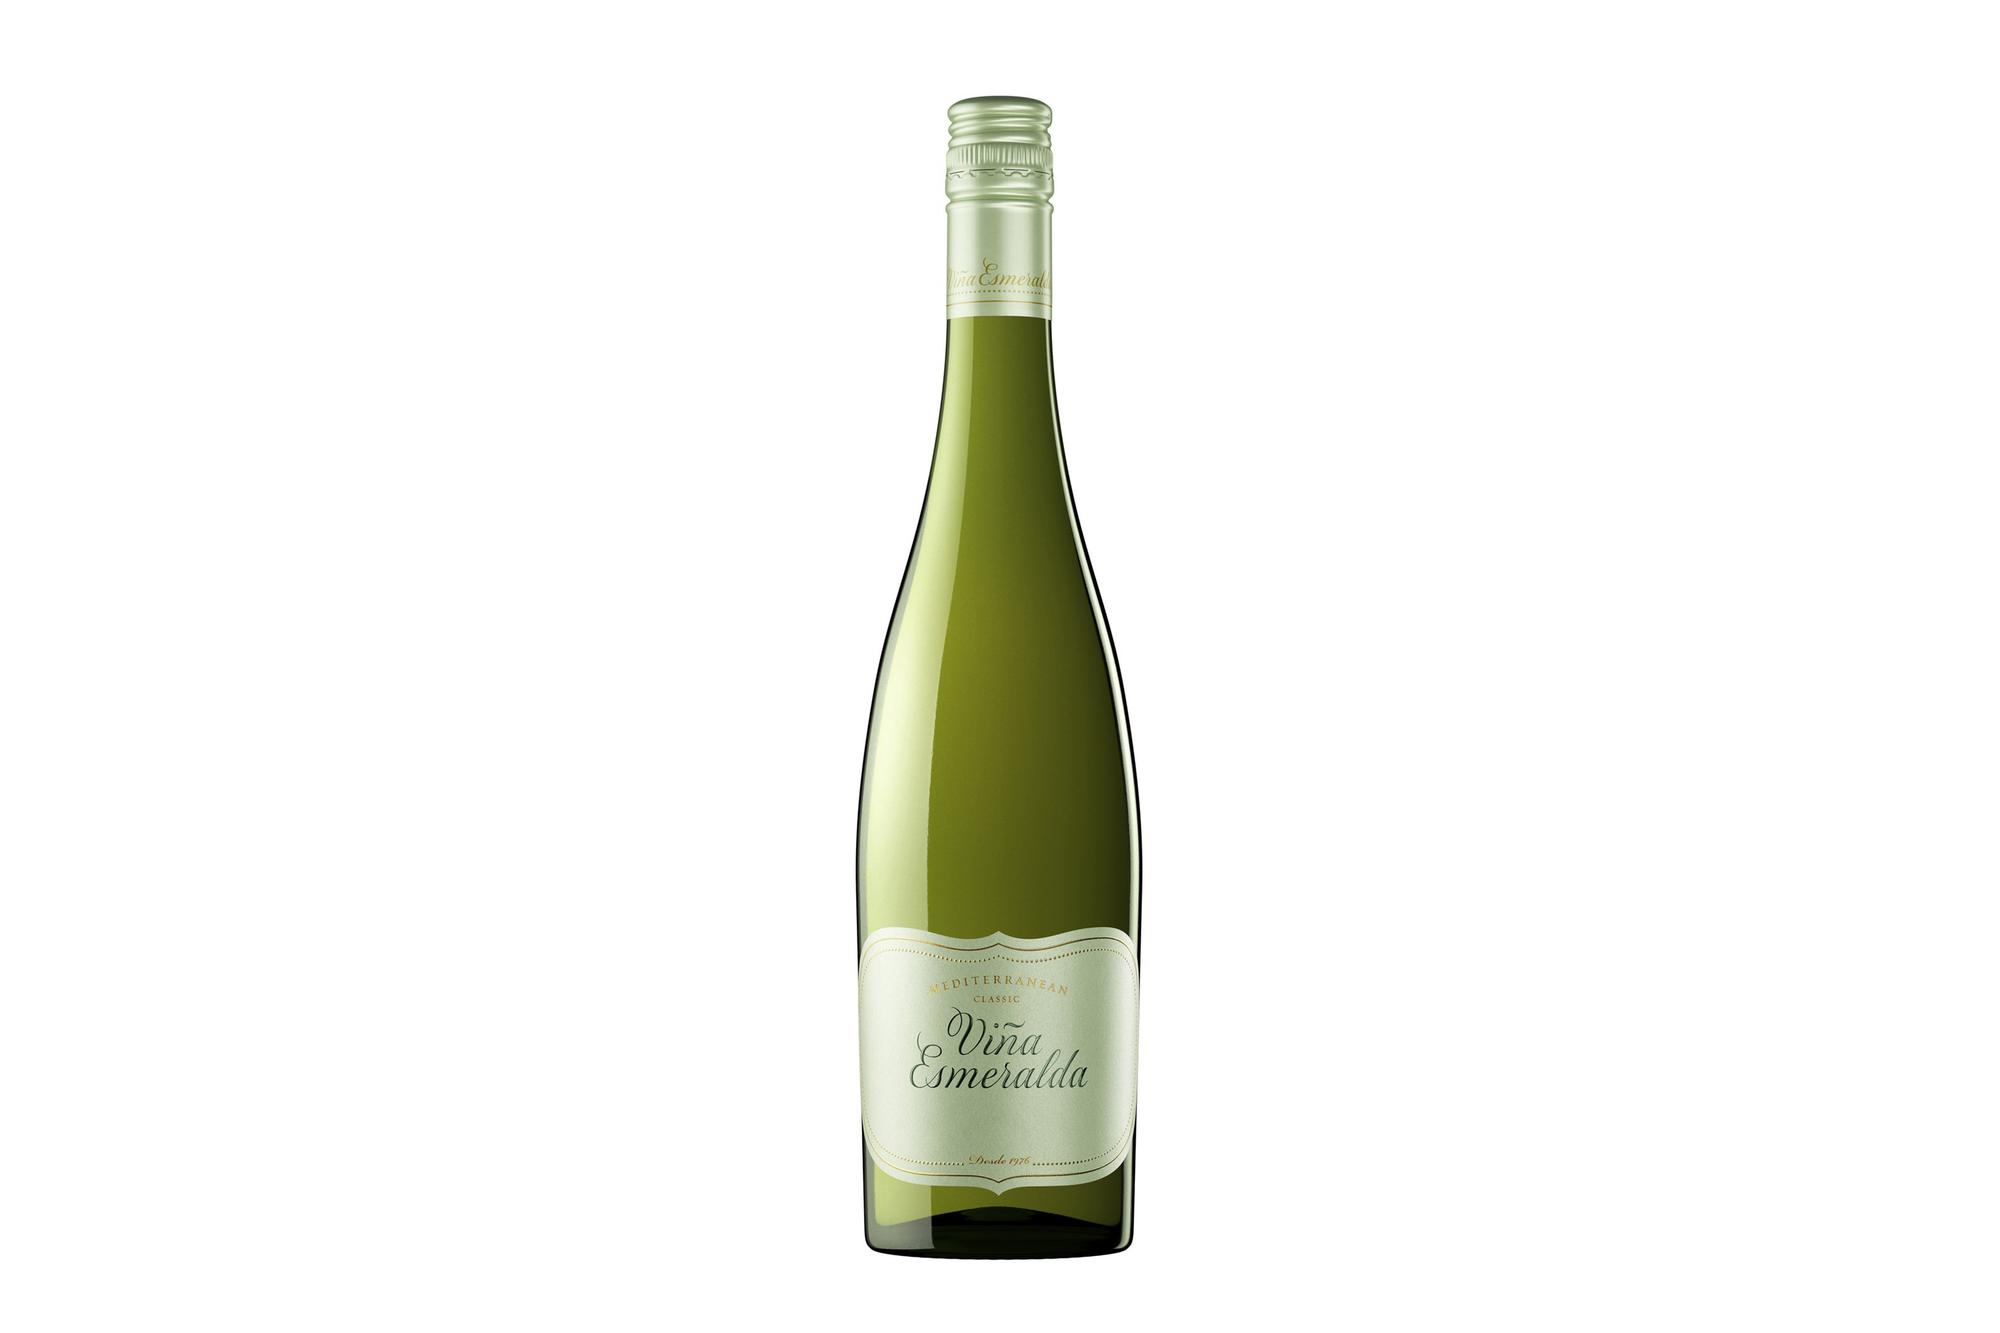 Thirst-quenching white wine for summer days | Alistair Gibson